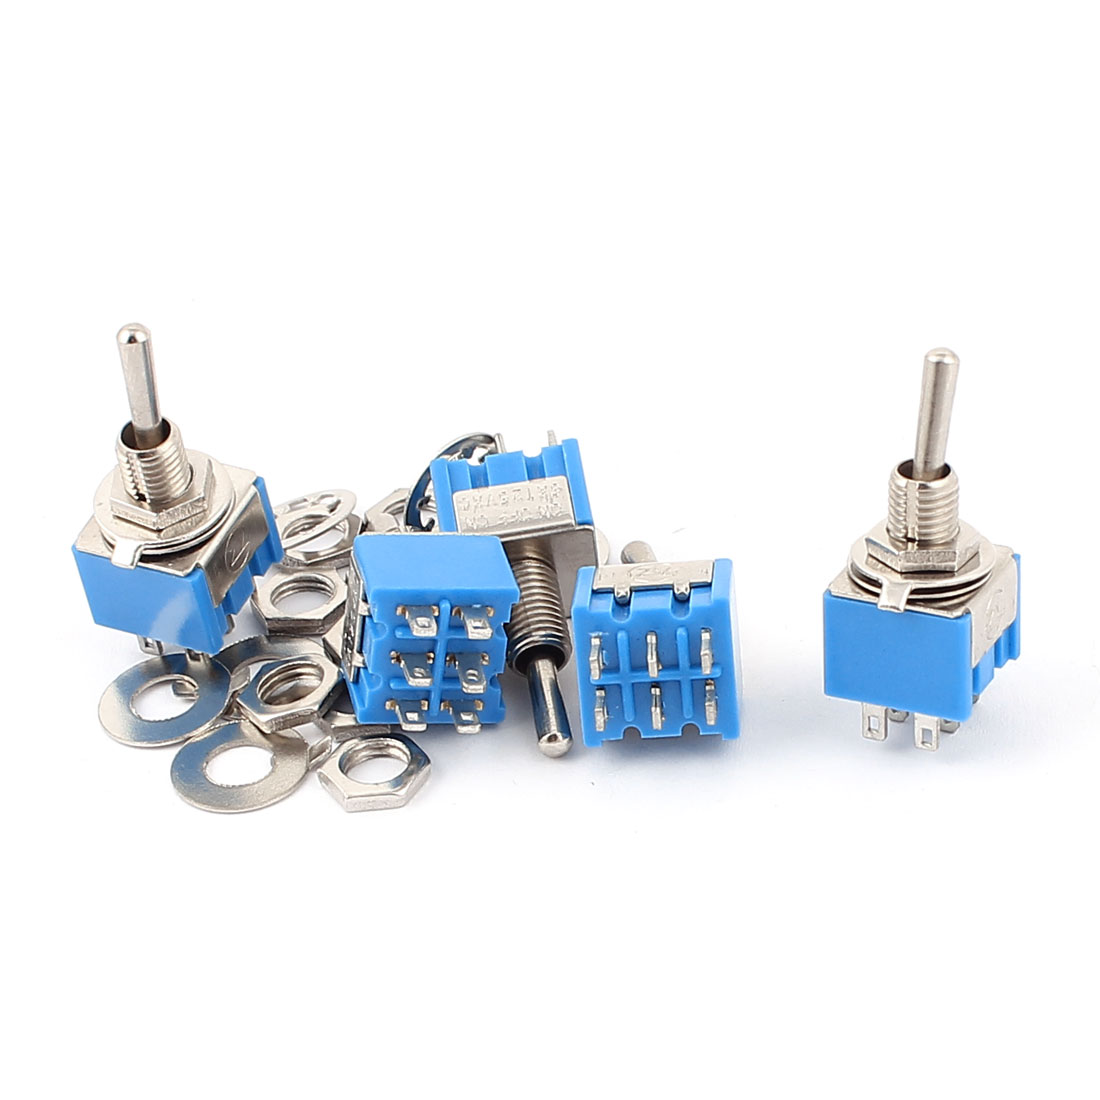 5pcs AC 125V 3A 6 Terminals 6mm Thread Panel Mount 3 Position On/Off/On DPDT Latching Toggle Switch